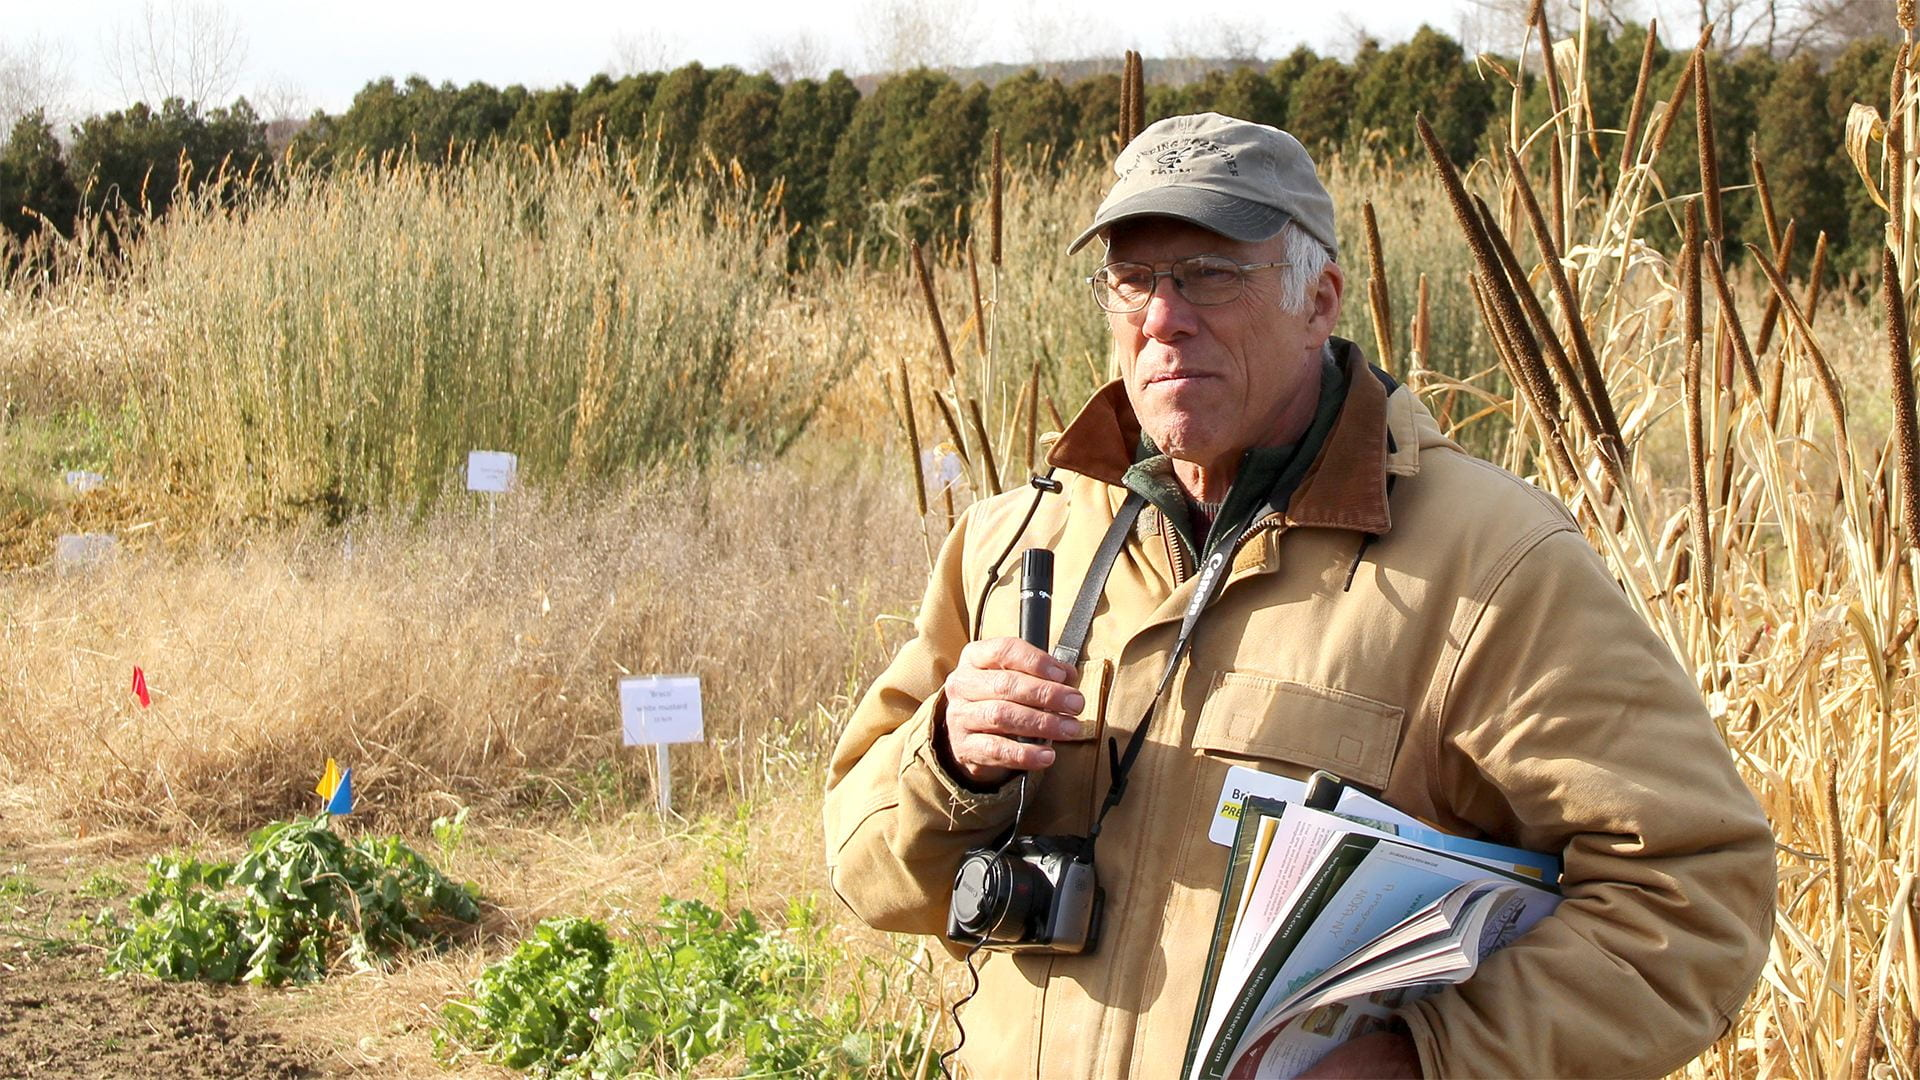 Brian Caldwell with mic, camera and stack of handouts at field day witn cover and forage crop plots in the background